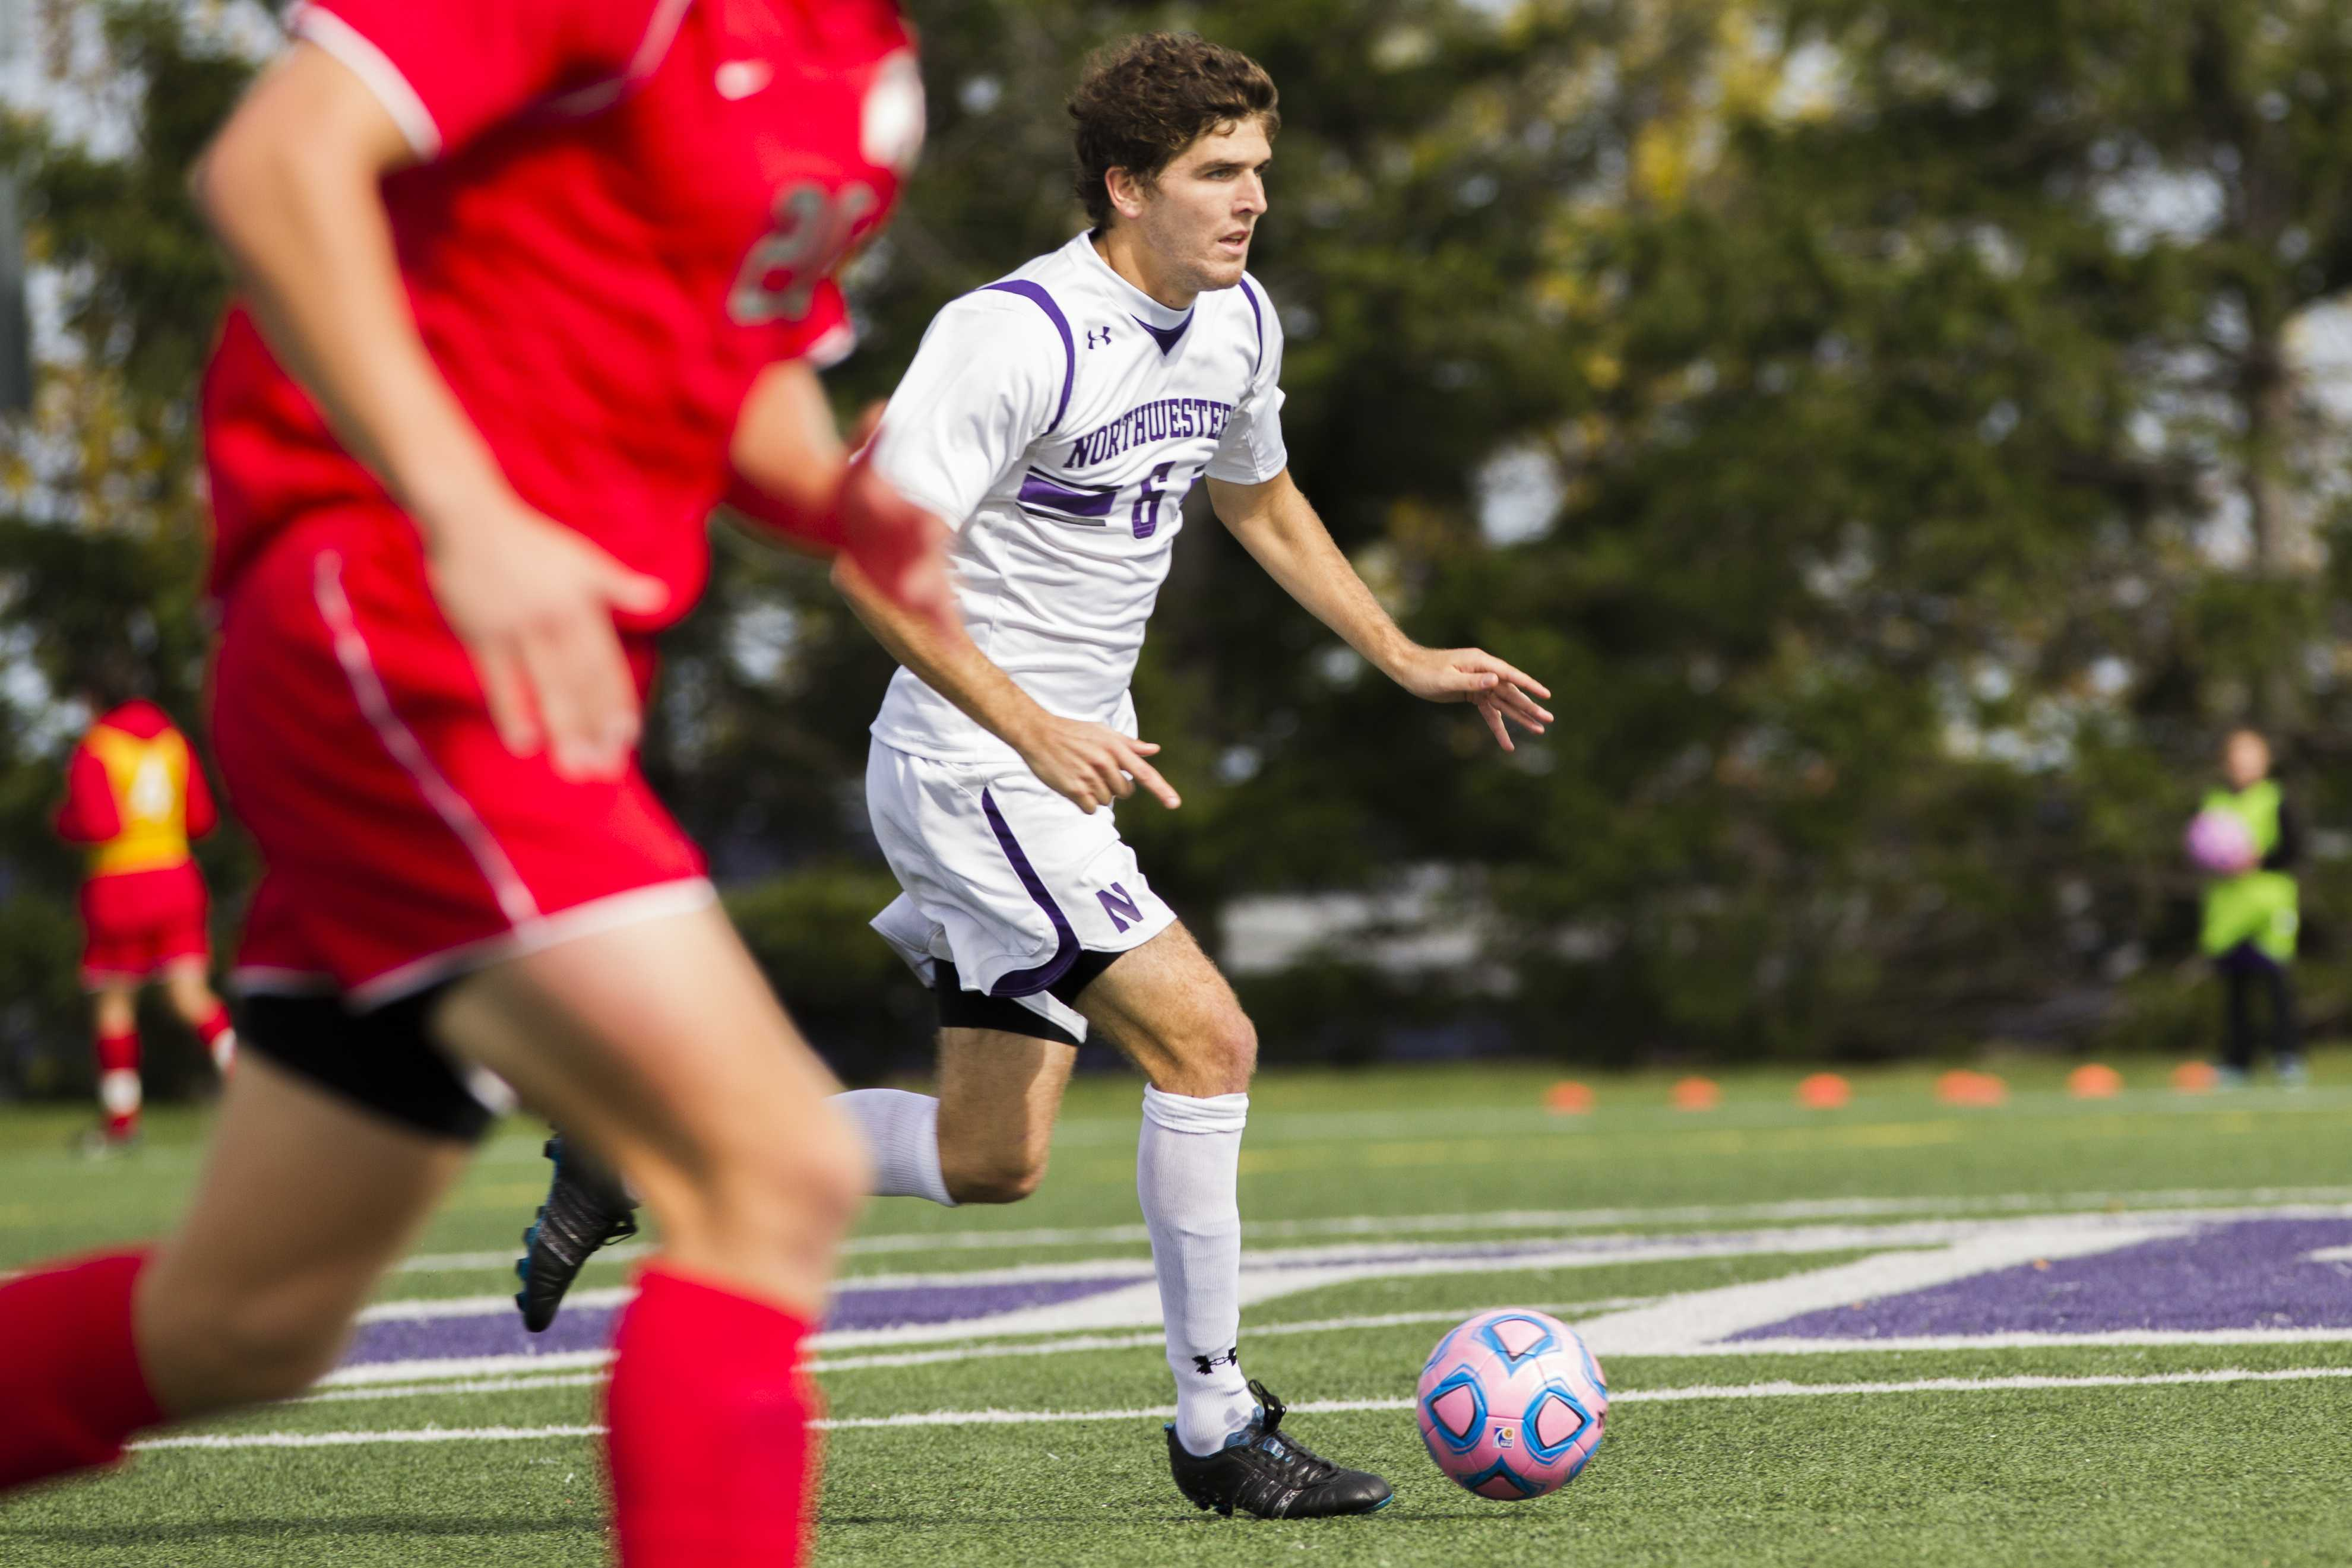 Northwestern midfielder Chris Ritter and the Wildcats can still win the Big Ten Championship despite dropping their last two games. NU fell in extra time to Penn State and Northern Illinois.